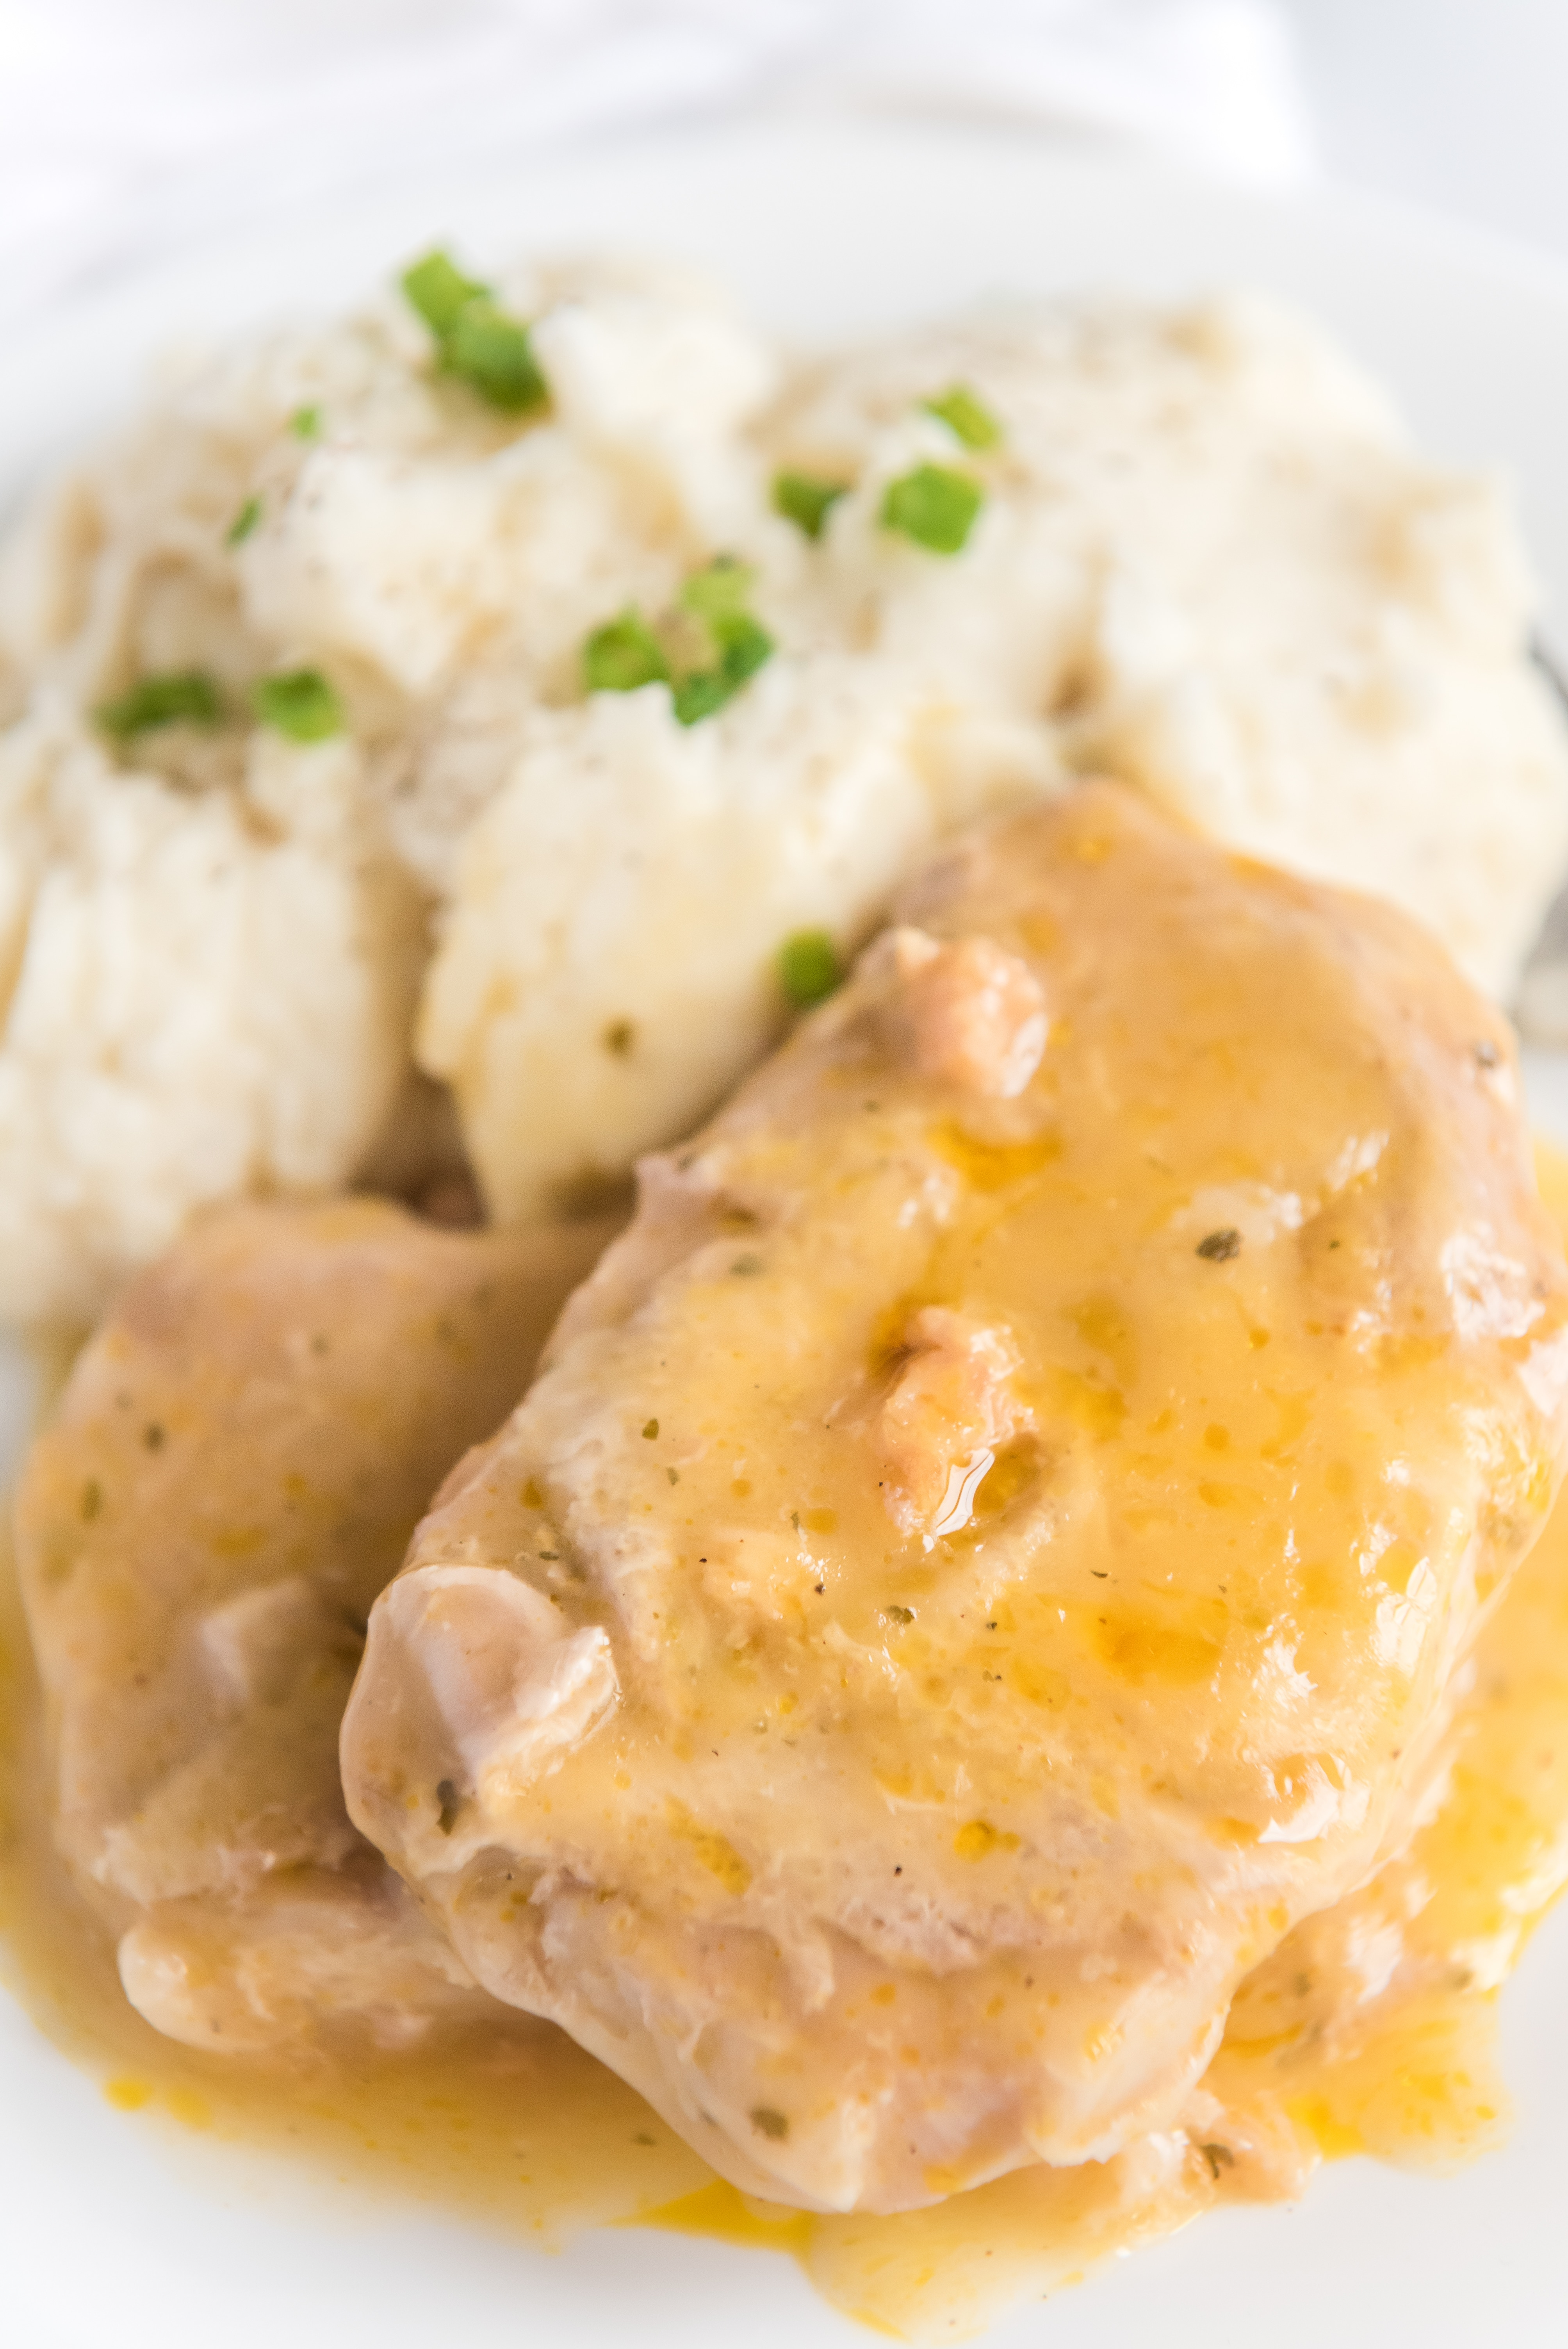 Crockpot Pork Chops Recipe